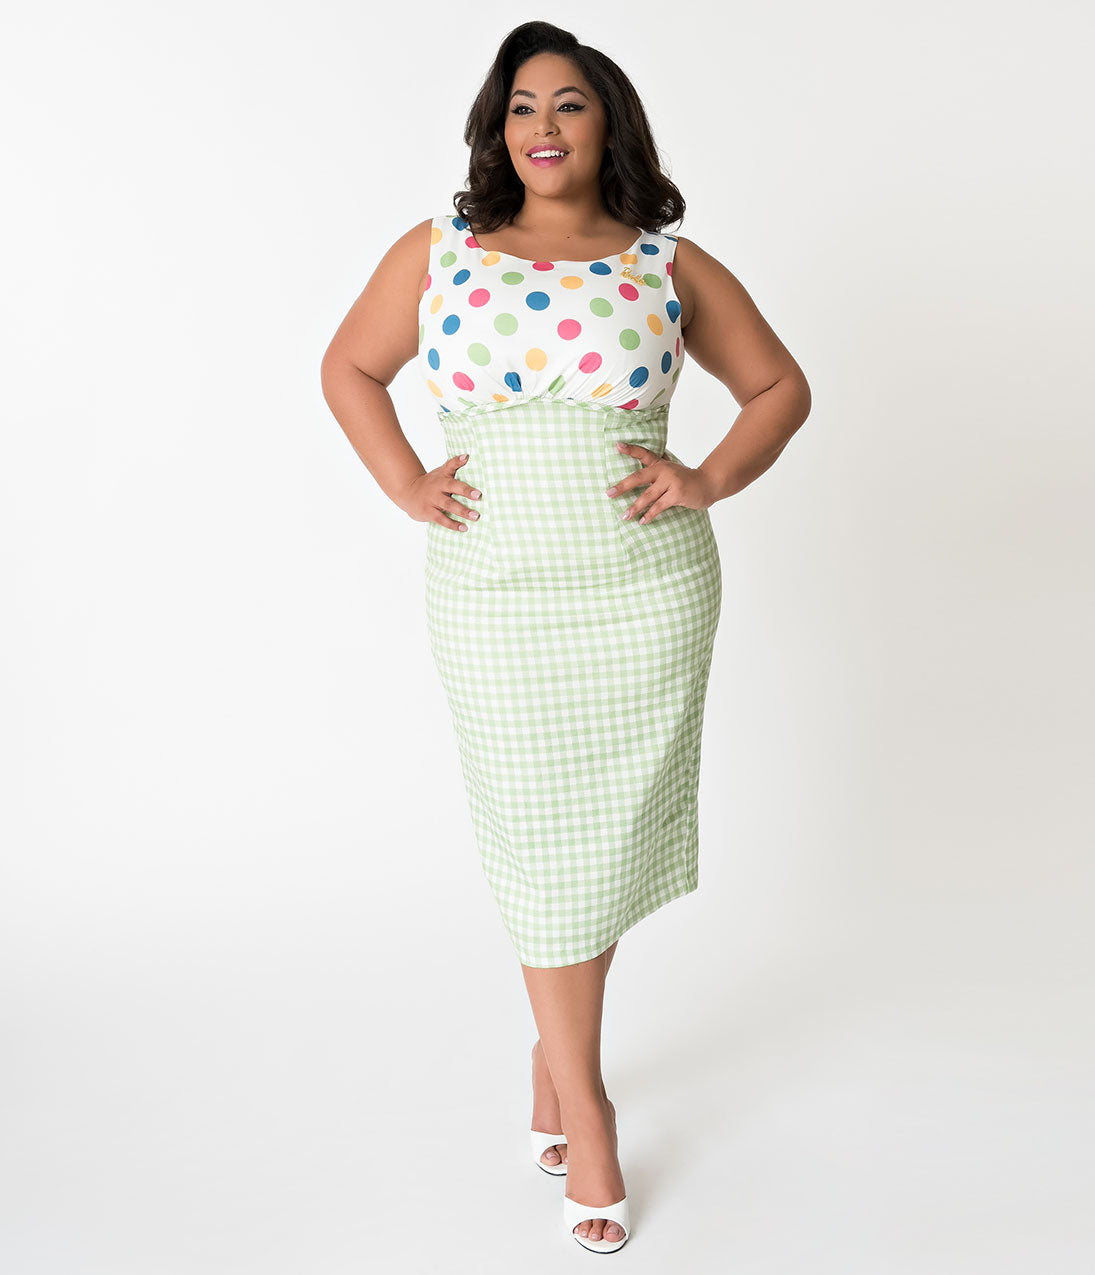 Plus Size Polka Dot Dresses – Vintage 40s, 50s, 60s Dresses Barbie X Unique Vintage Plus Size 1960S Lunch On The Terrace Pencil Dress $118.00 AT vintagedancer.com